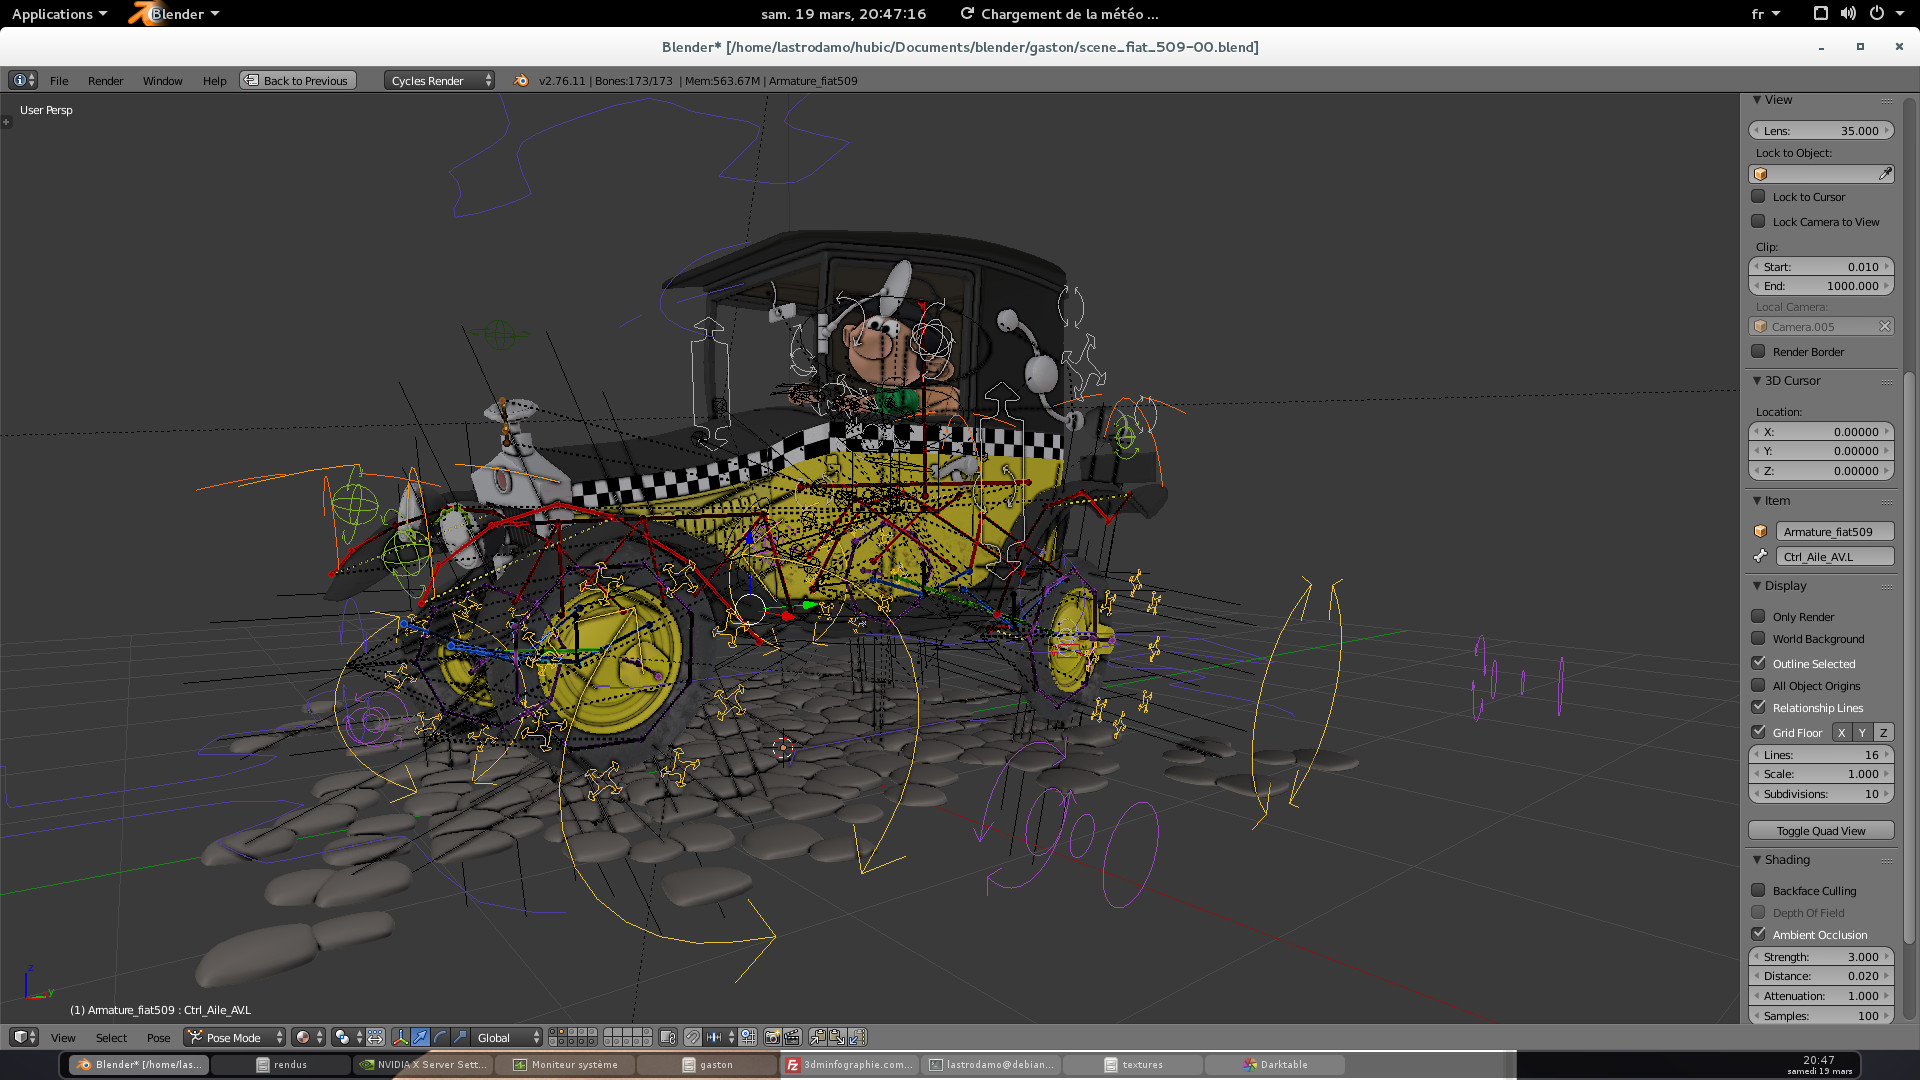 /images/graphisme-3d/travaux_personnels/gaston_lagaffe/rig_gaston